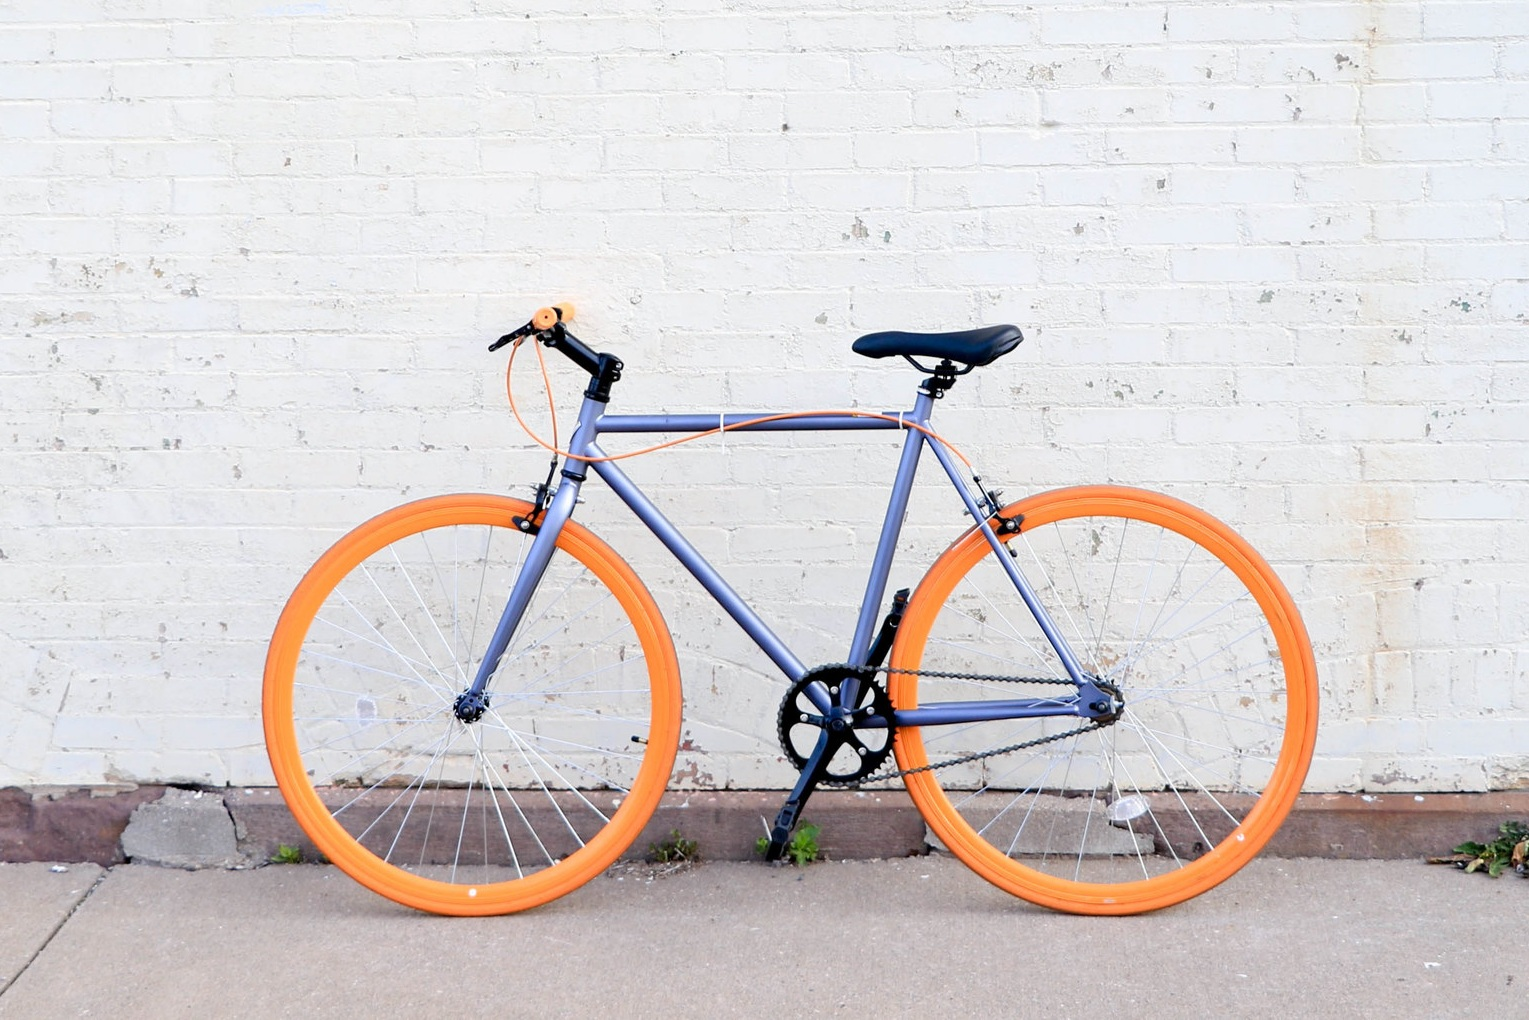 Running a painting company from a bicycle may not seem like the best business plan, but somehow it worked out!